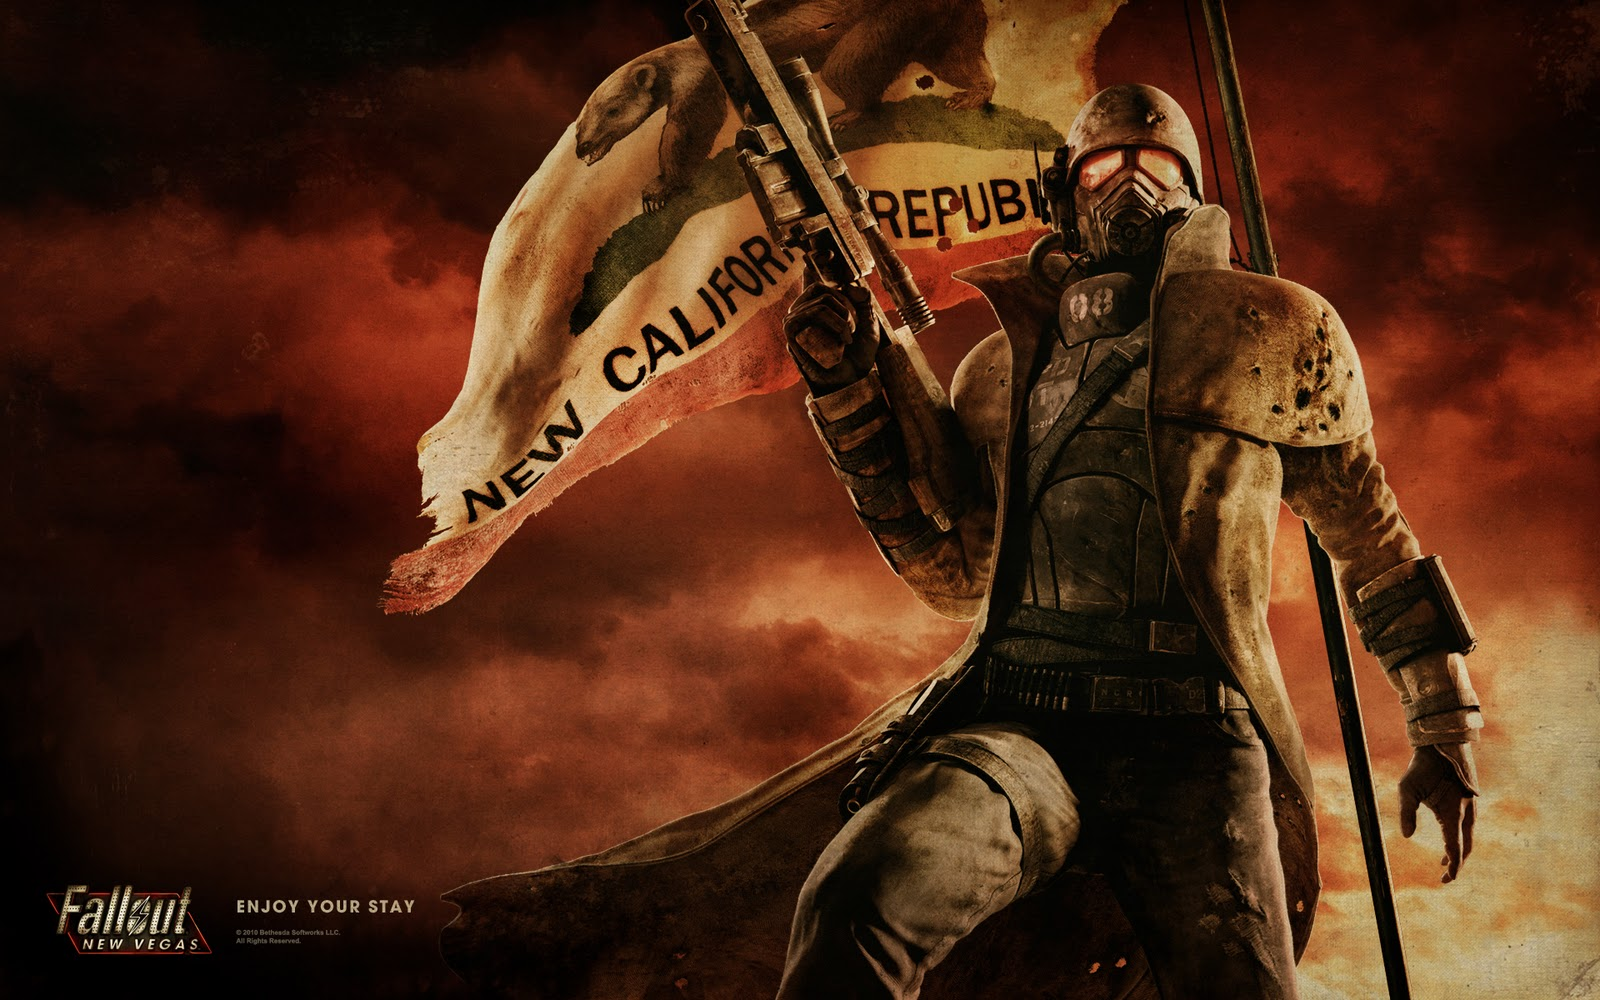 fallout nv wallpaper - photo #4